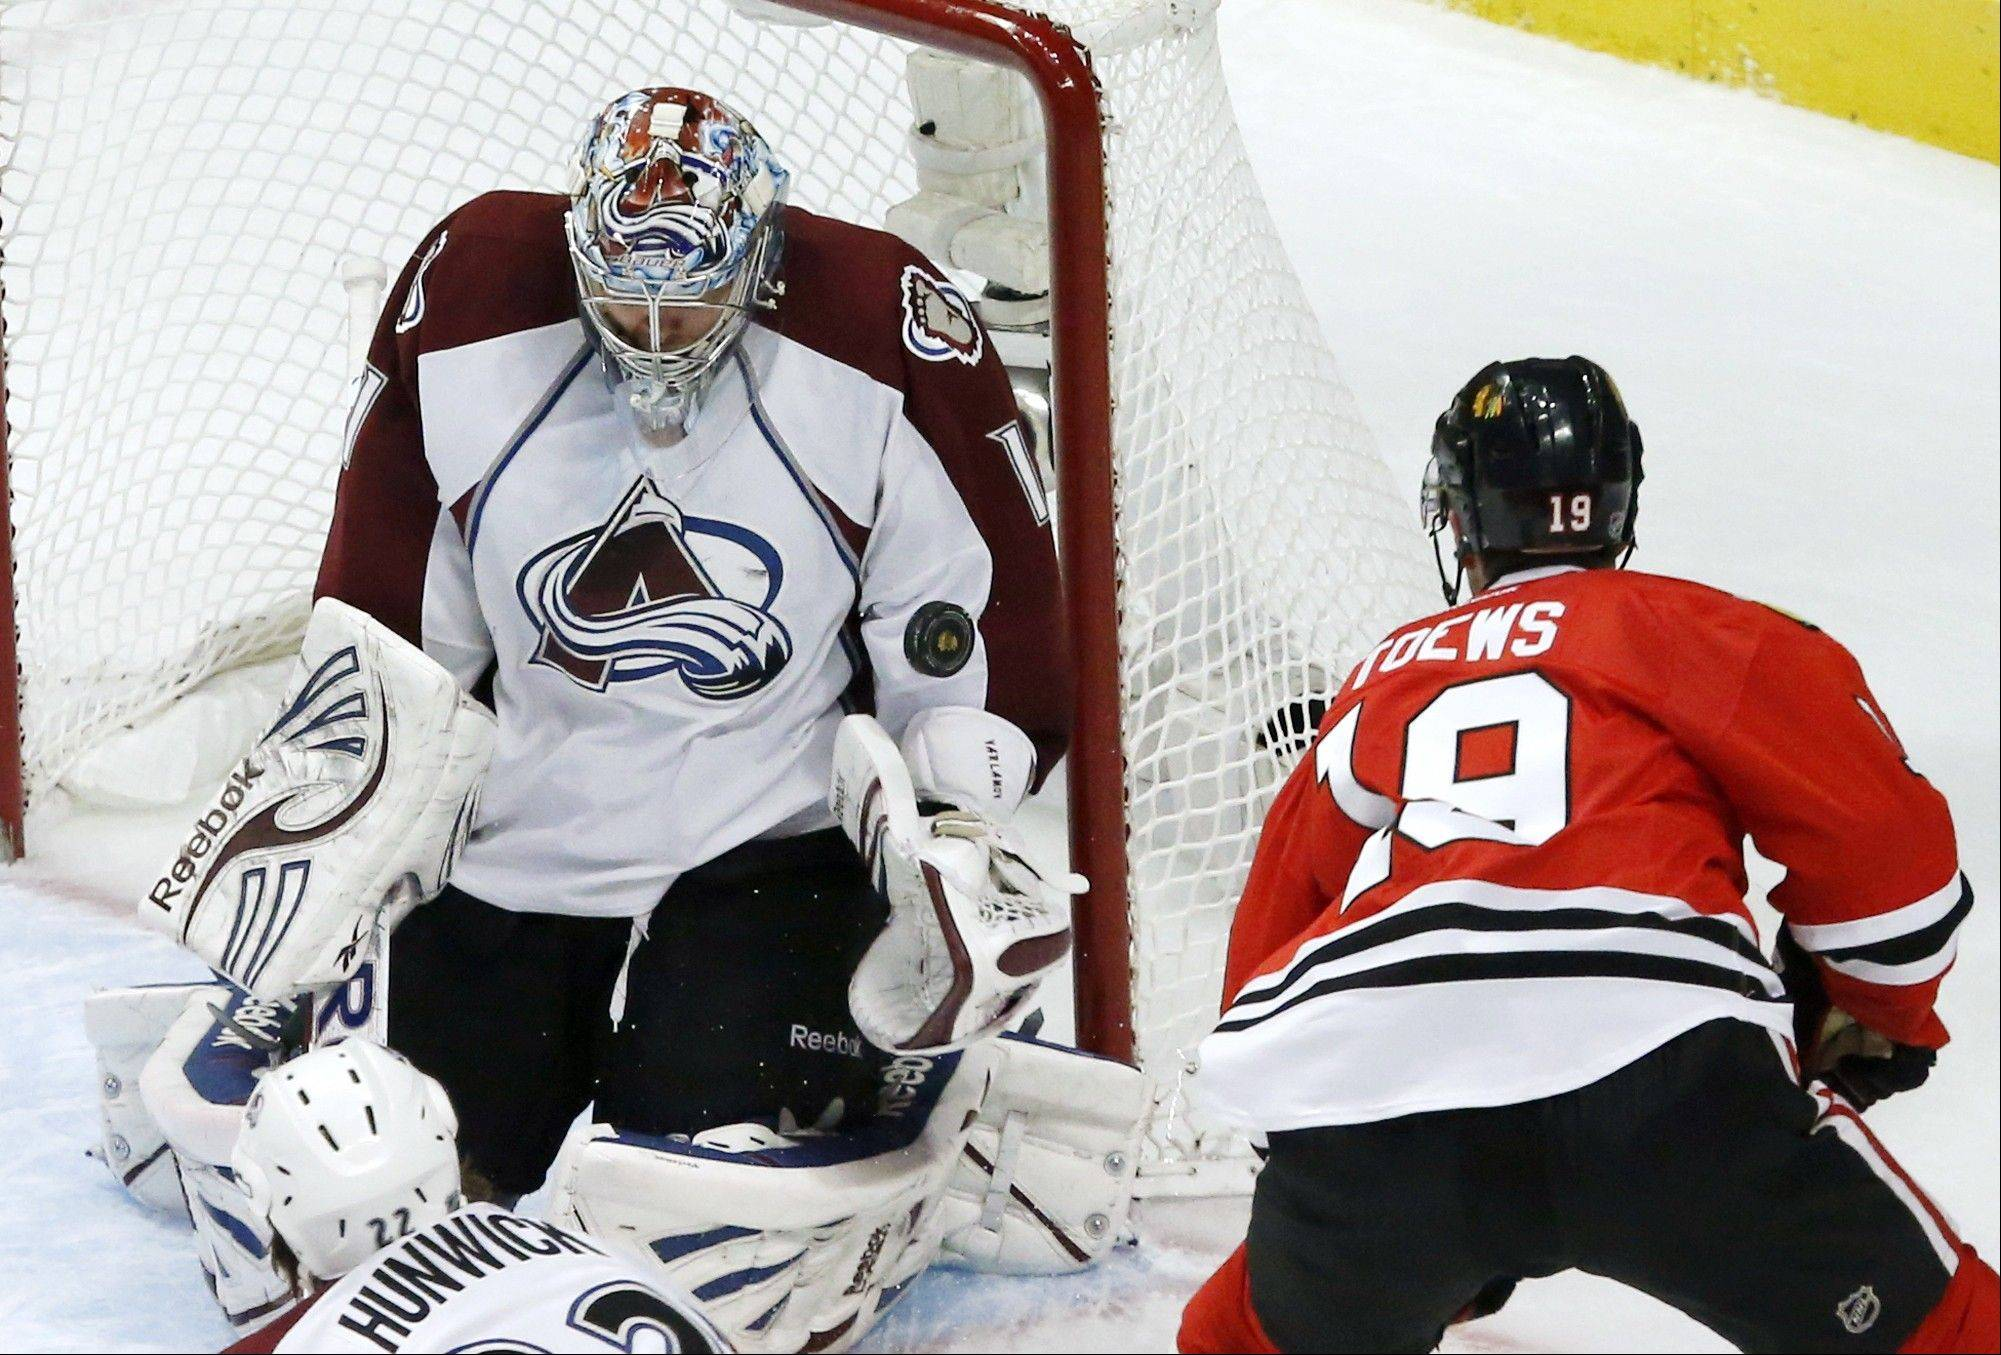 Colorado Avalanche goalie Semyon Varlamov makes a save on a shot by Chicago Blackhawks center Jonathan Toews during the second period.